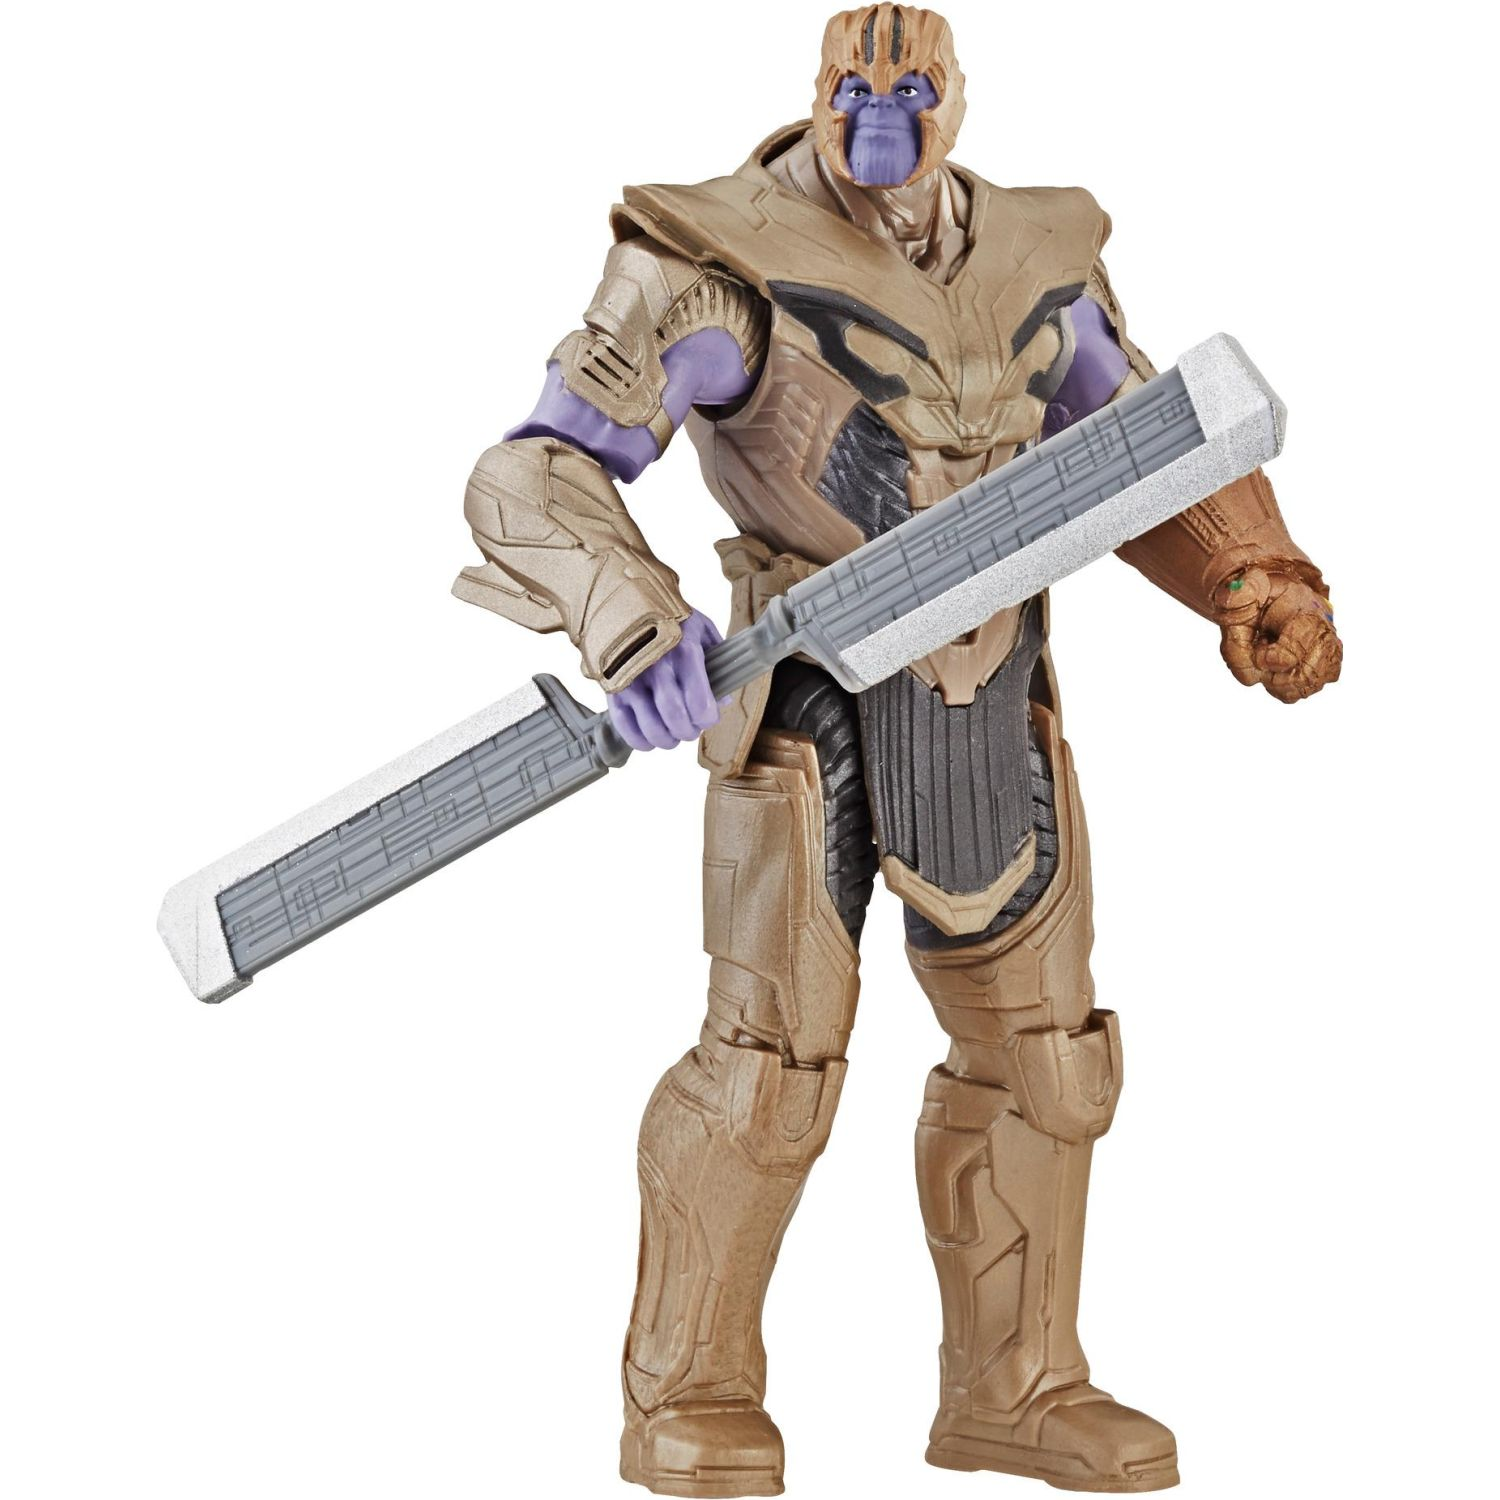 Avengers avn 6in movie thanos Varios Figuras de acción